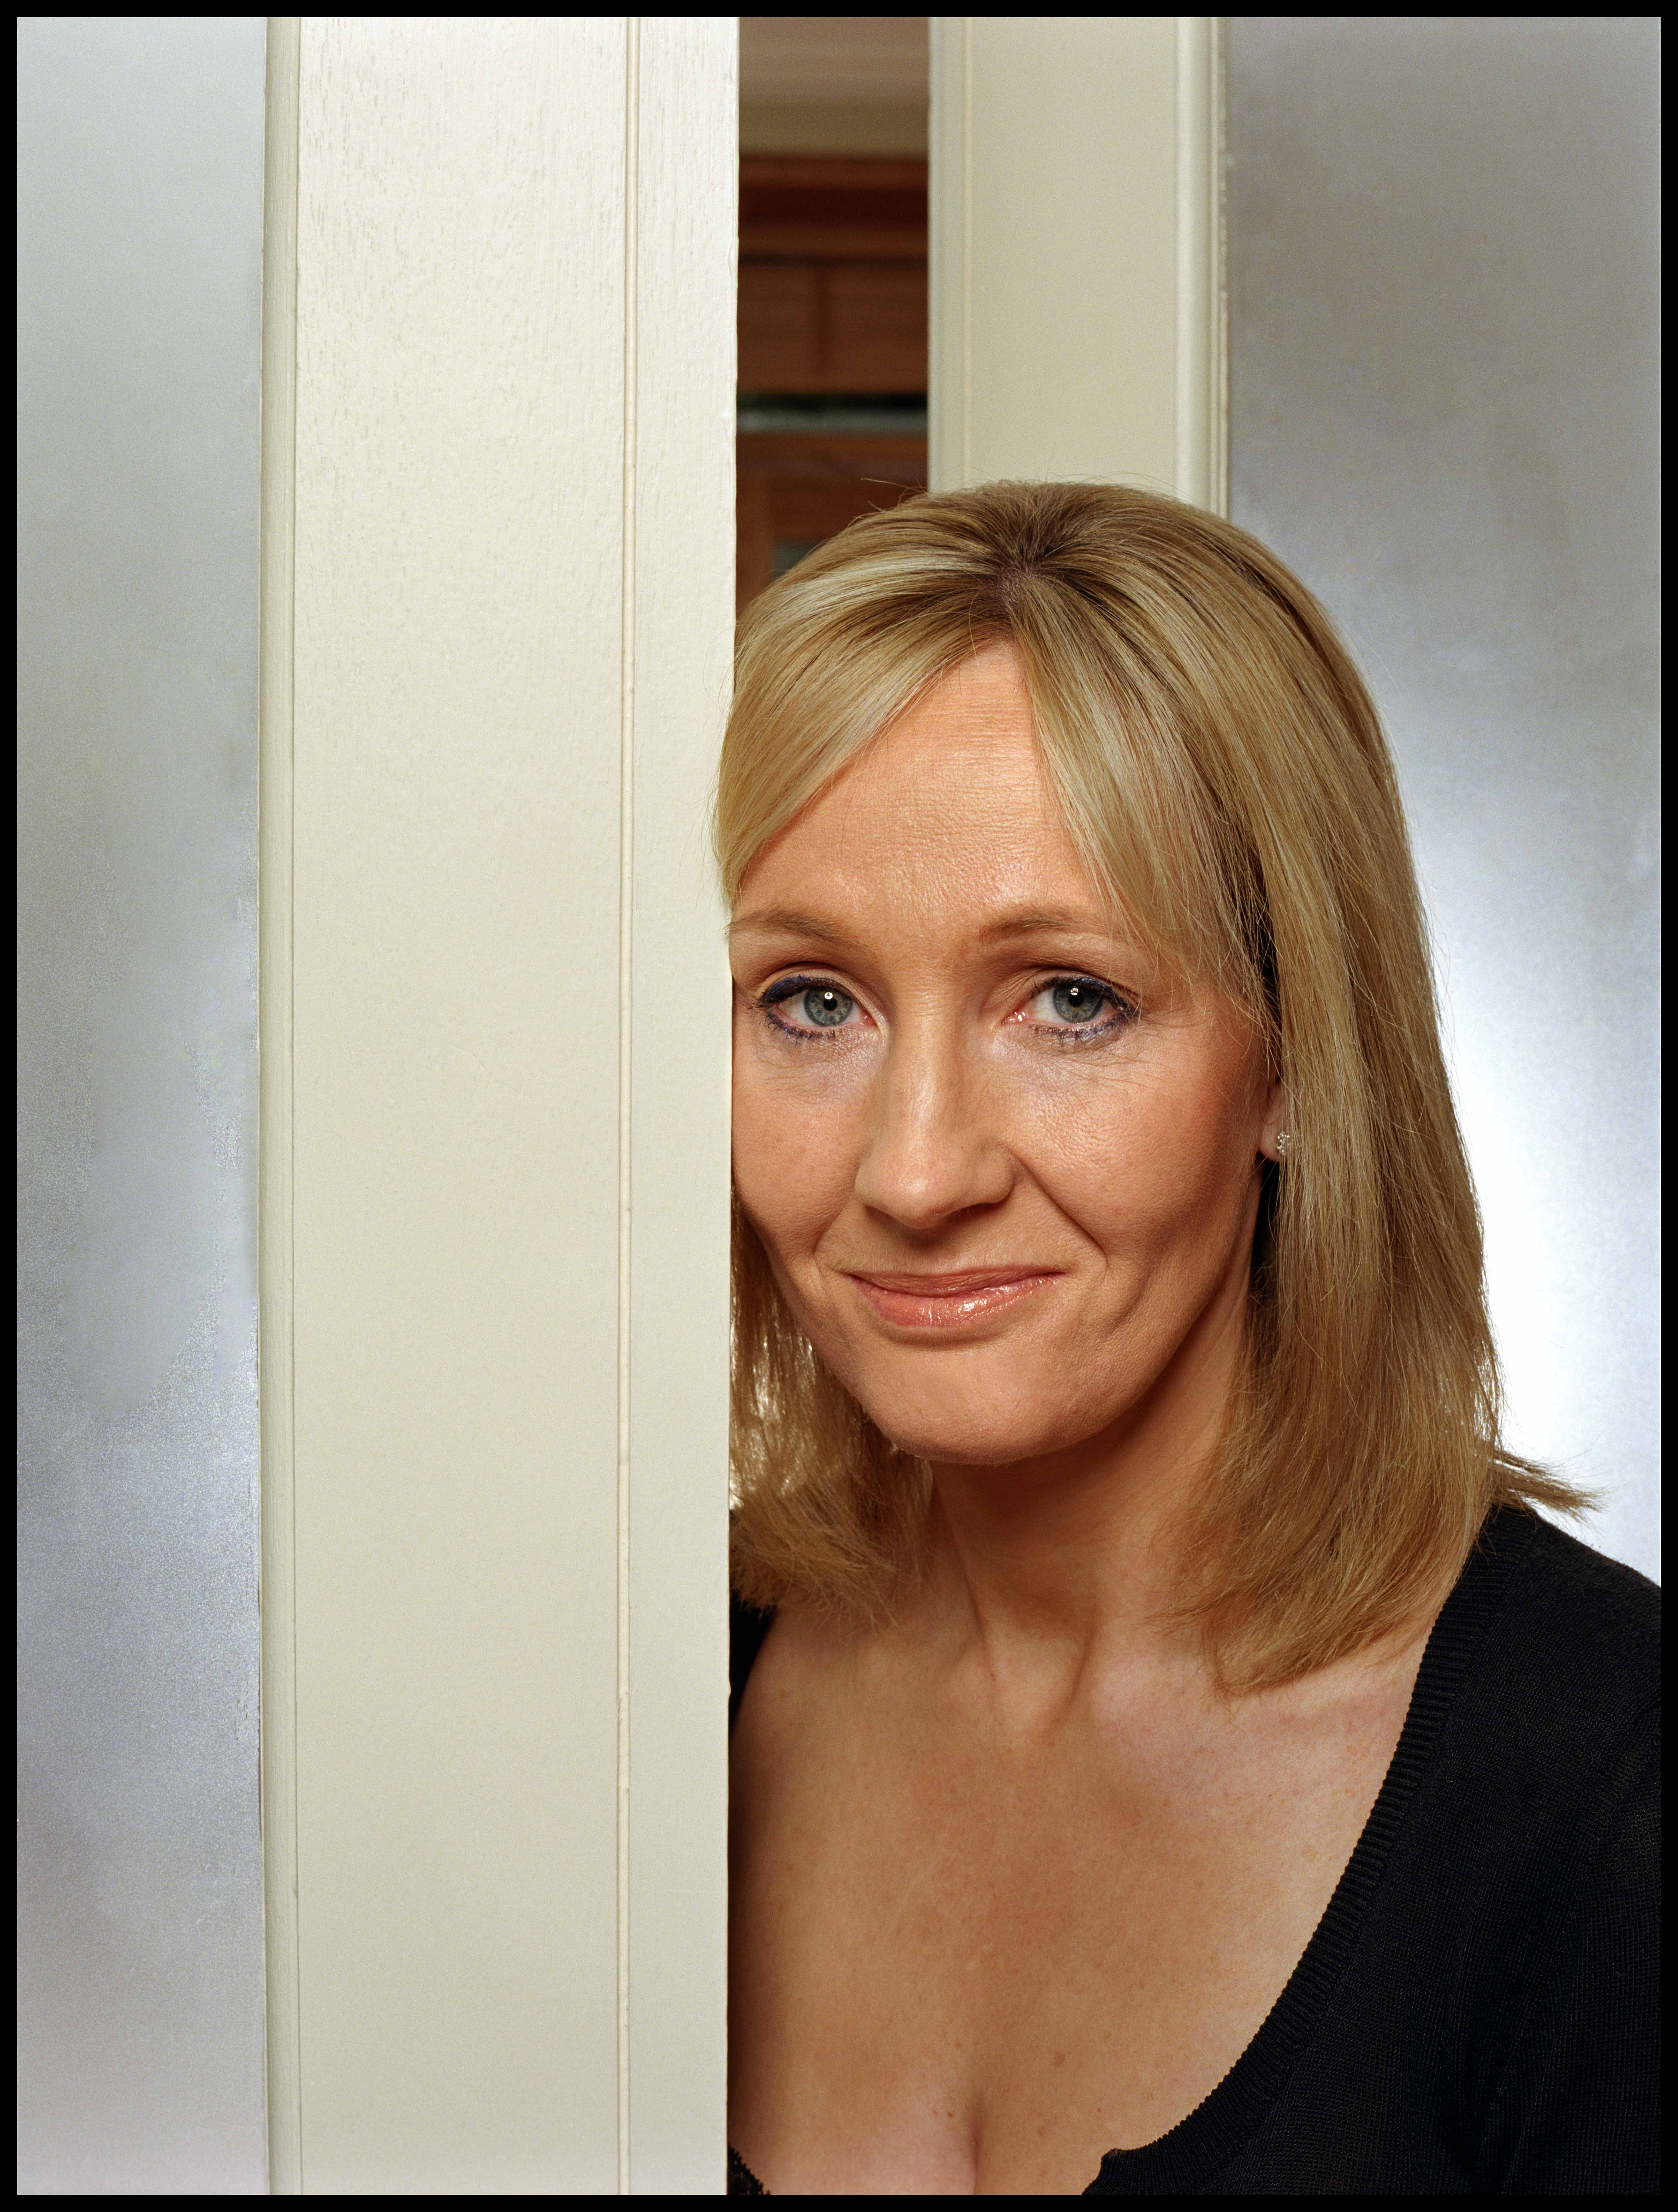 J.K. Rowling, thank you for making my life so much better with your genius, magical world of Harry Potter:)